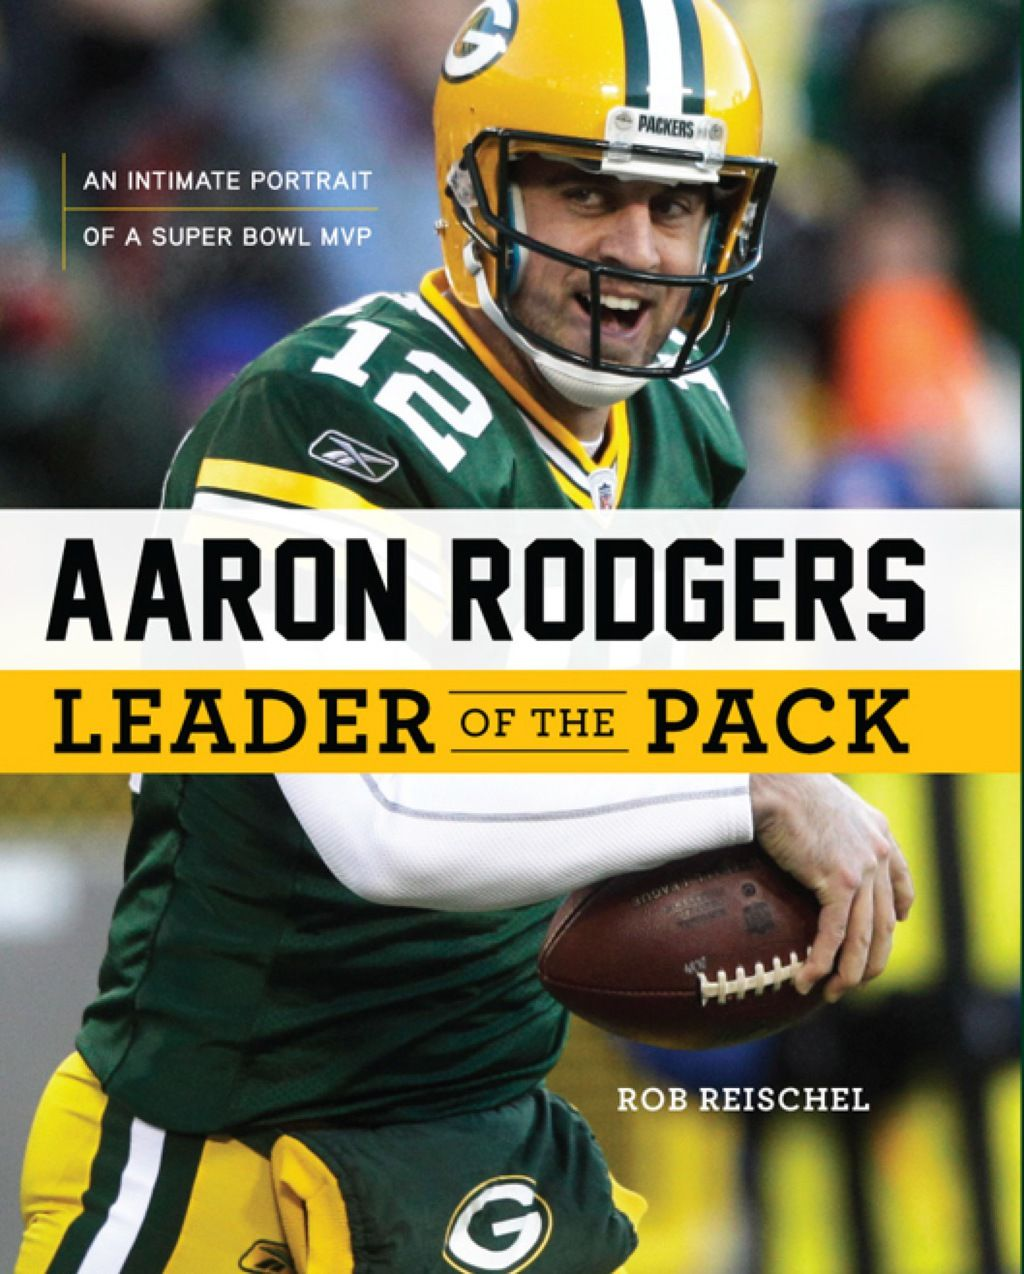 Aaron Rodgers Leader Of The Pack An Intimate Portrait Of A Super Bowl Mvp Ebook Rental Green Bay Packers Green Bay Aaron Rodgers